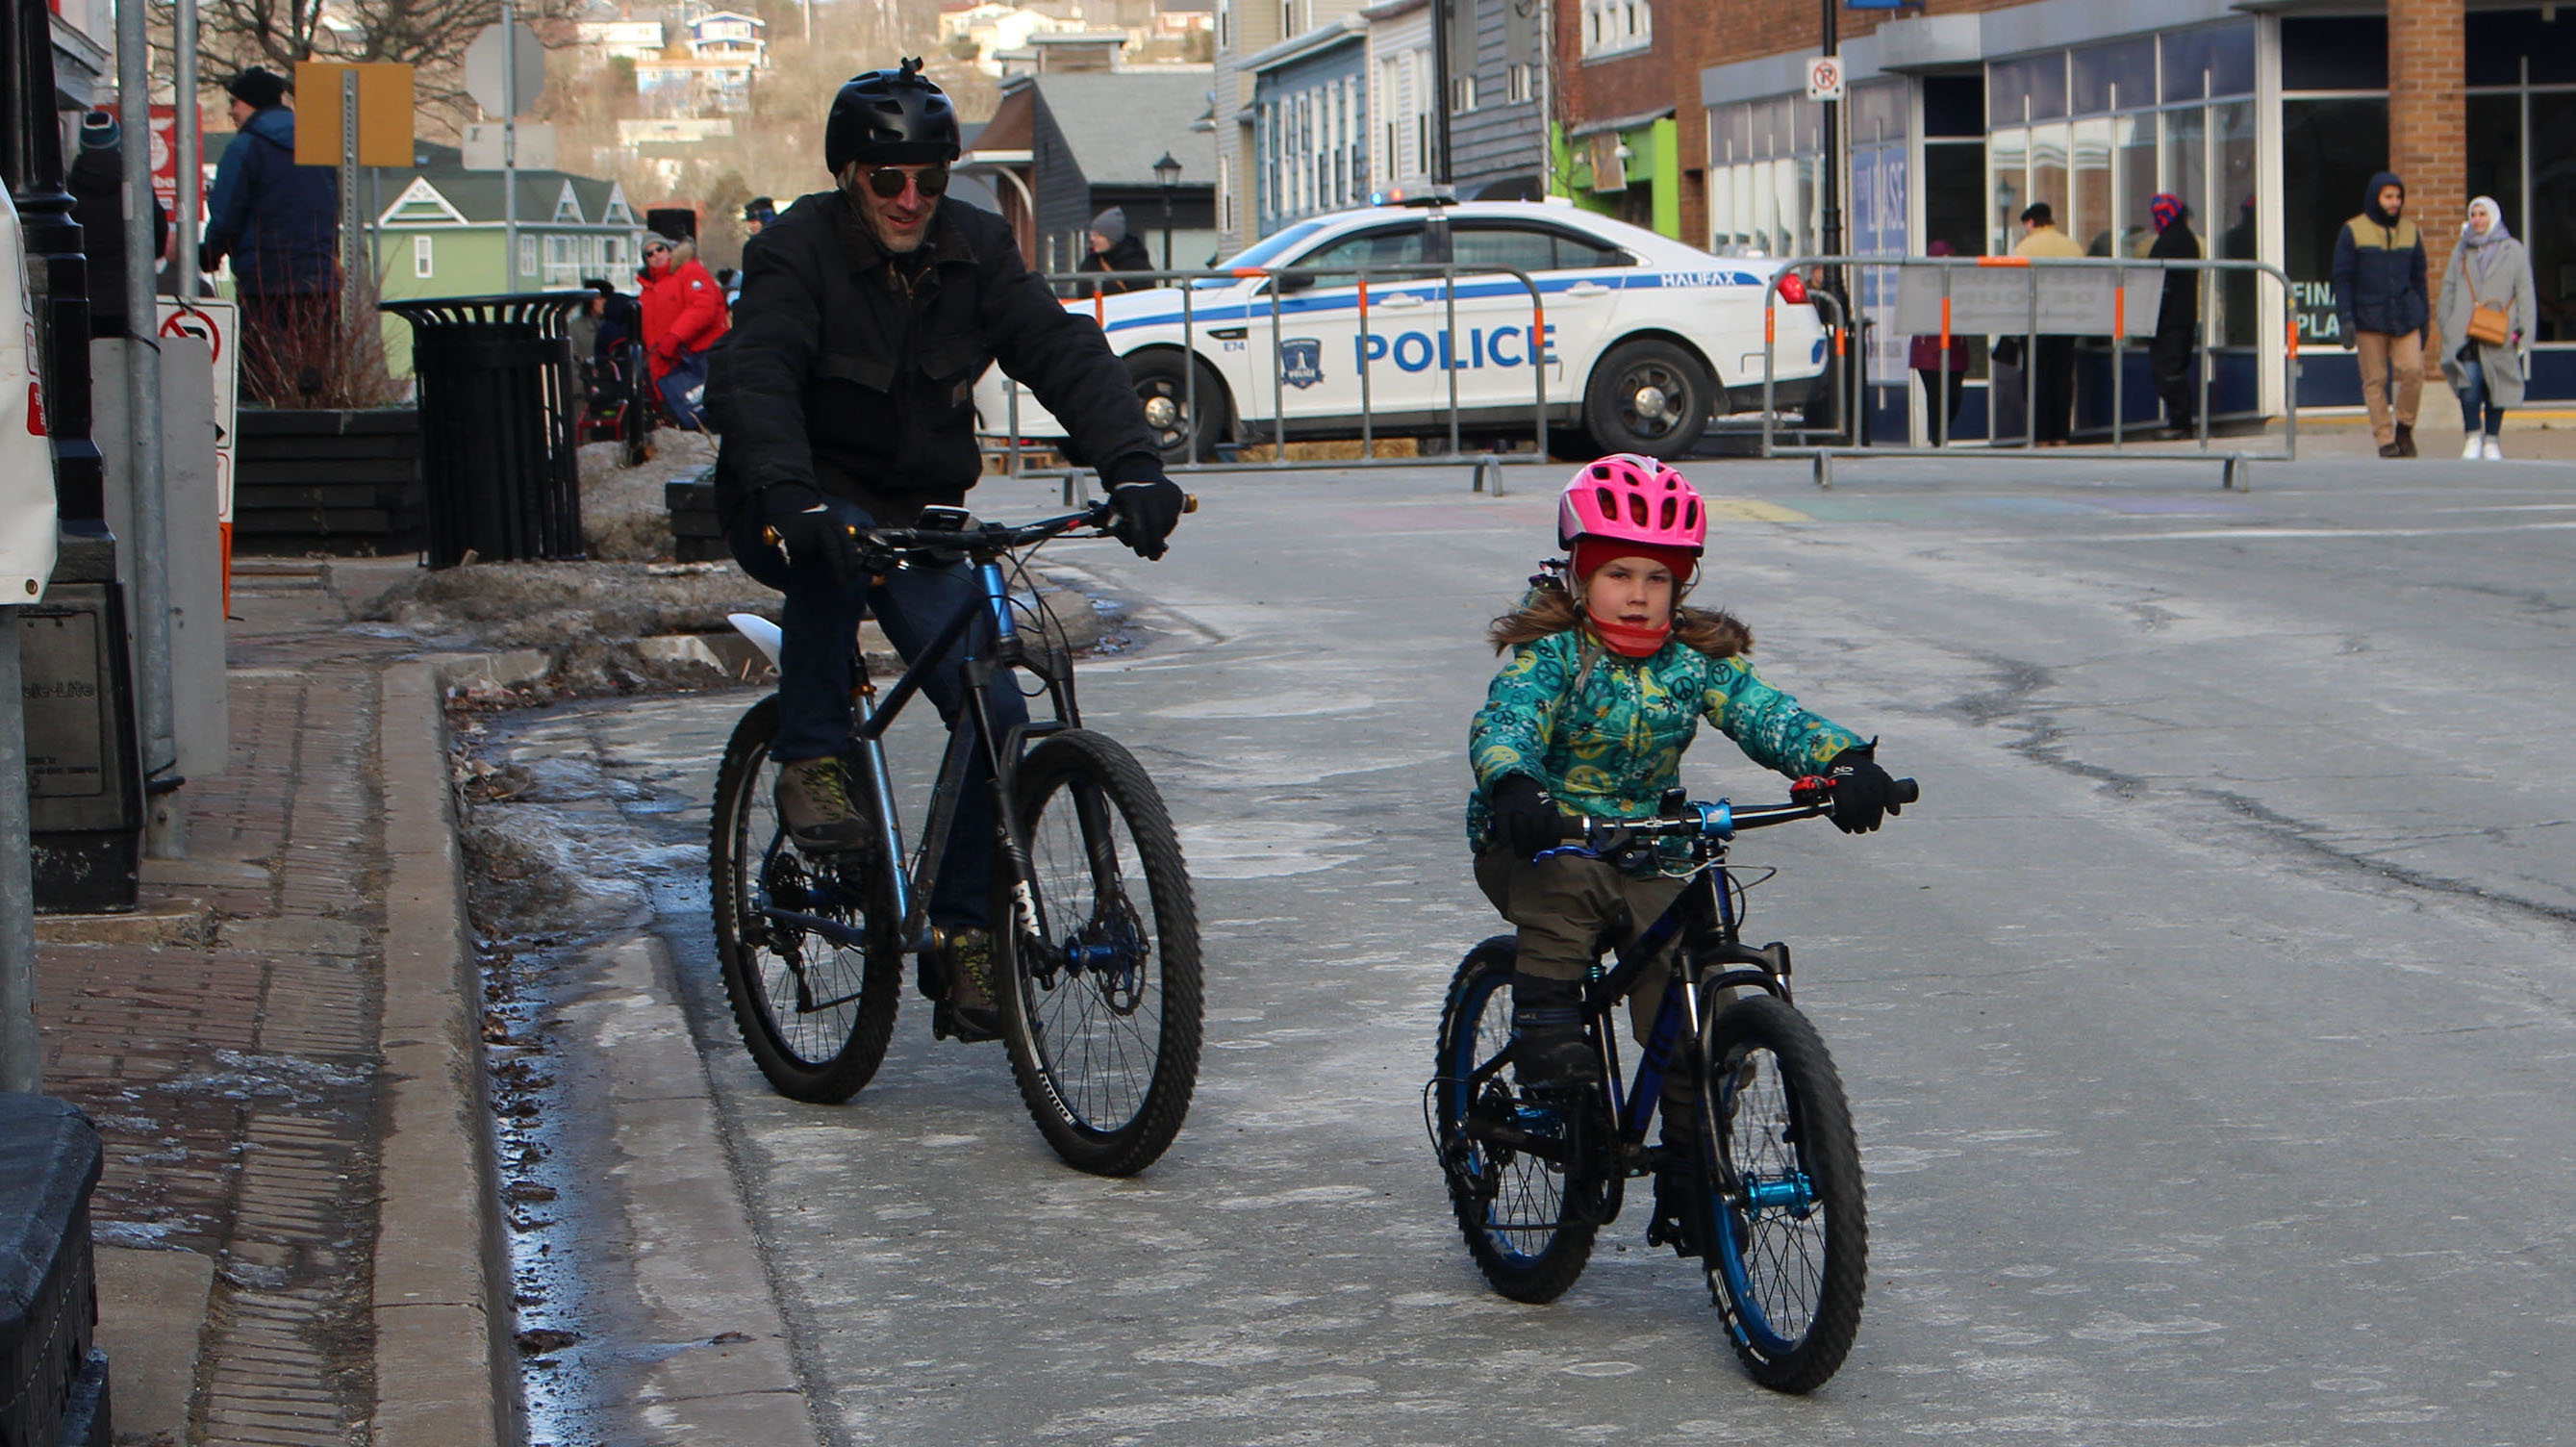 Marc Rickard (left) bikes with his daughter Ivy (right) down Portland Street in Dartmouth. They were out for the first day of Winter Bike Week in Halifax, which started Feb. 8.